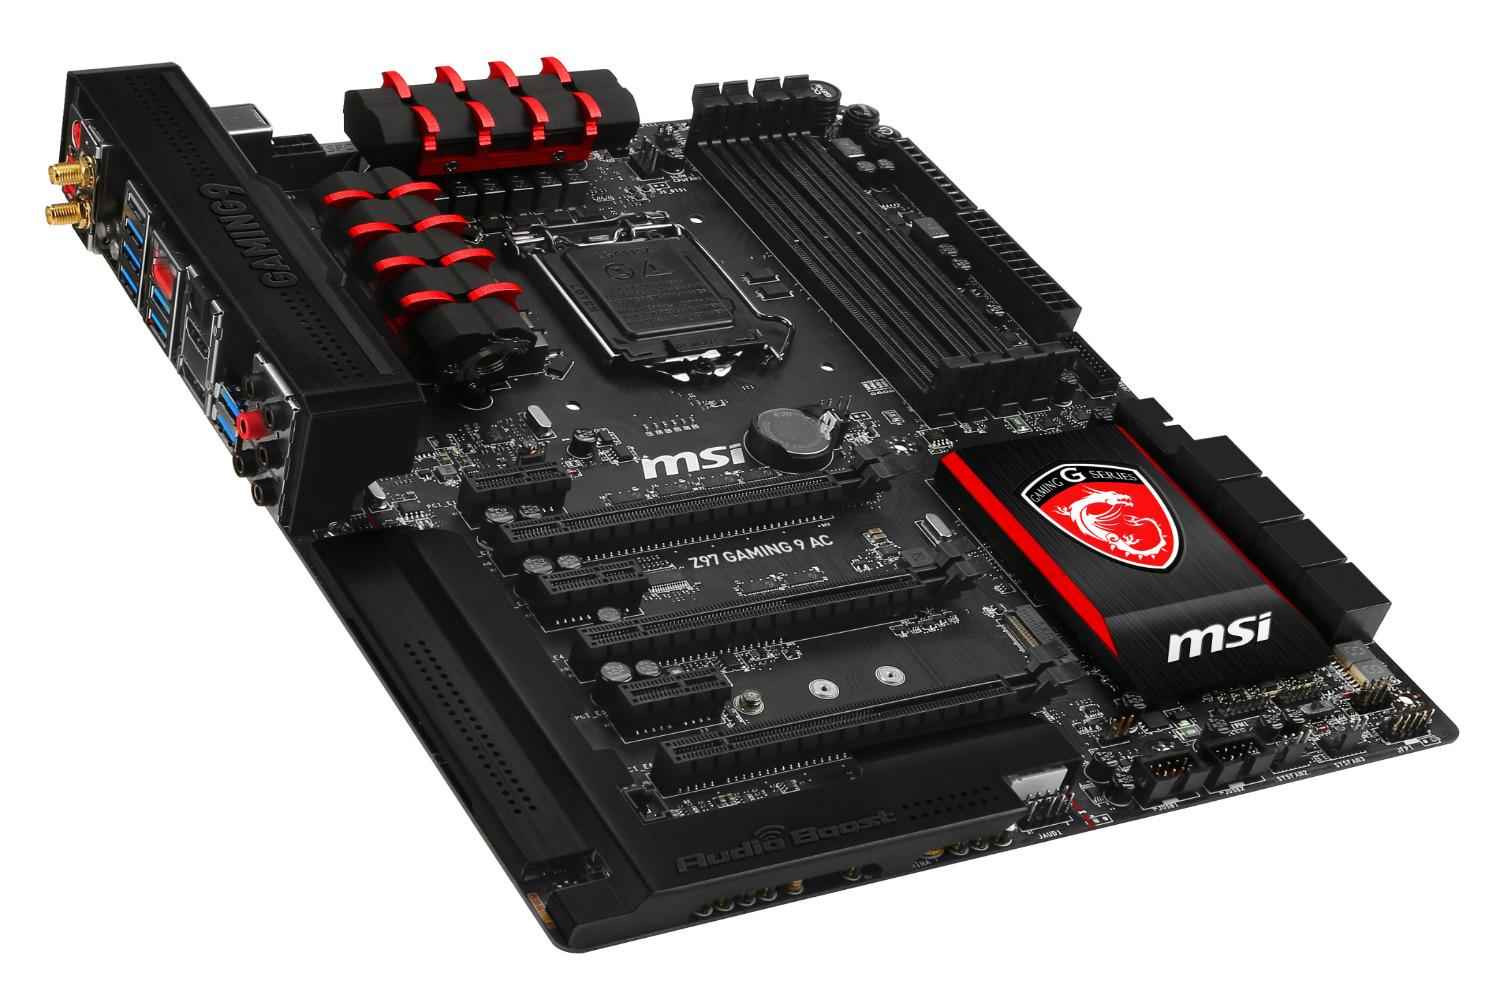 ASUS Z97WS Workstation Intel Z97 Motherboard Review